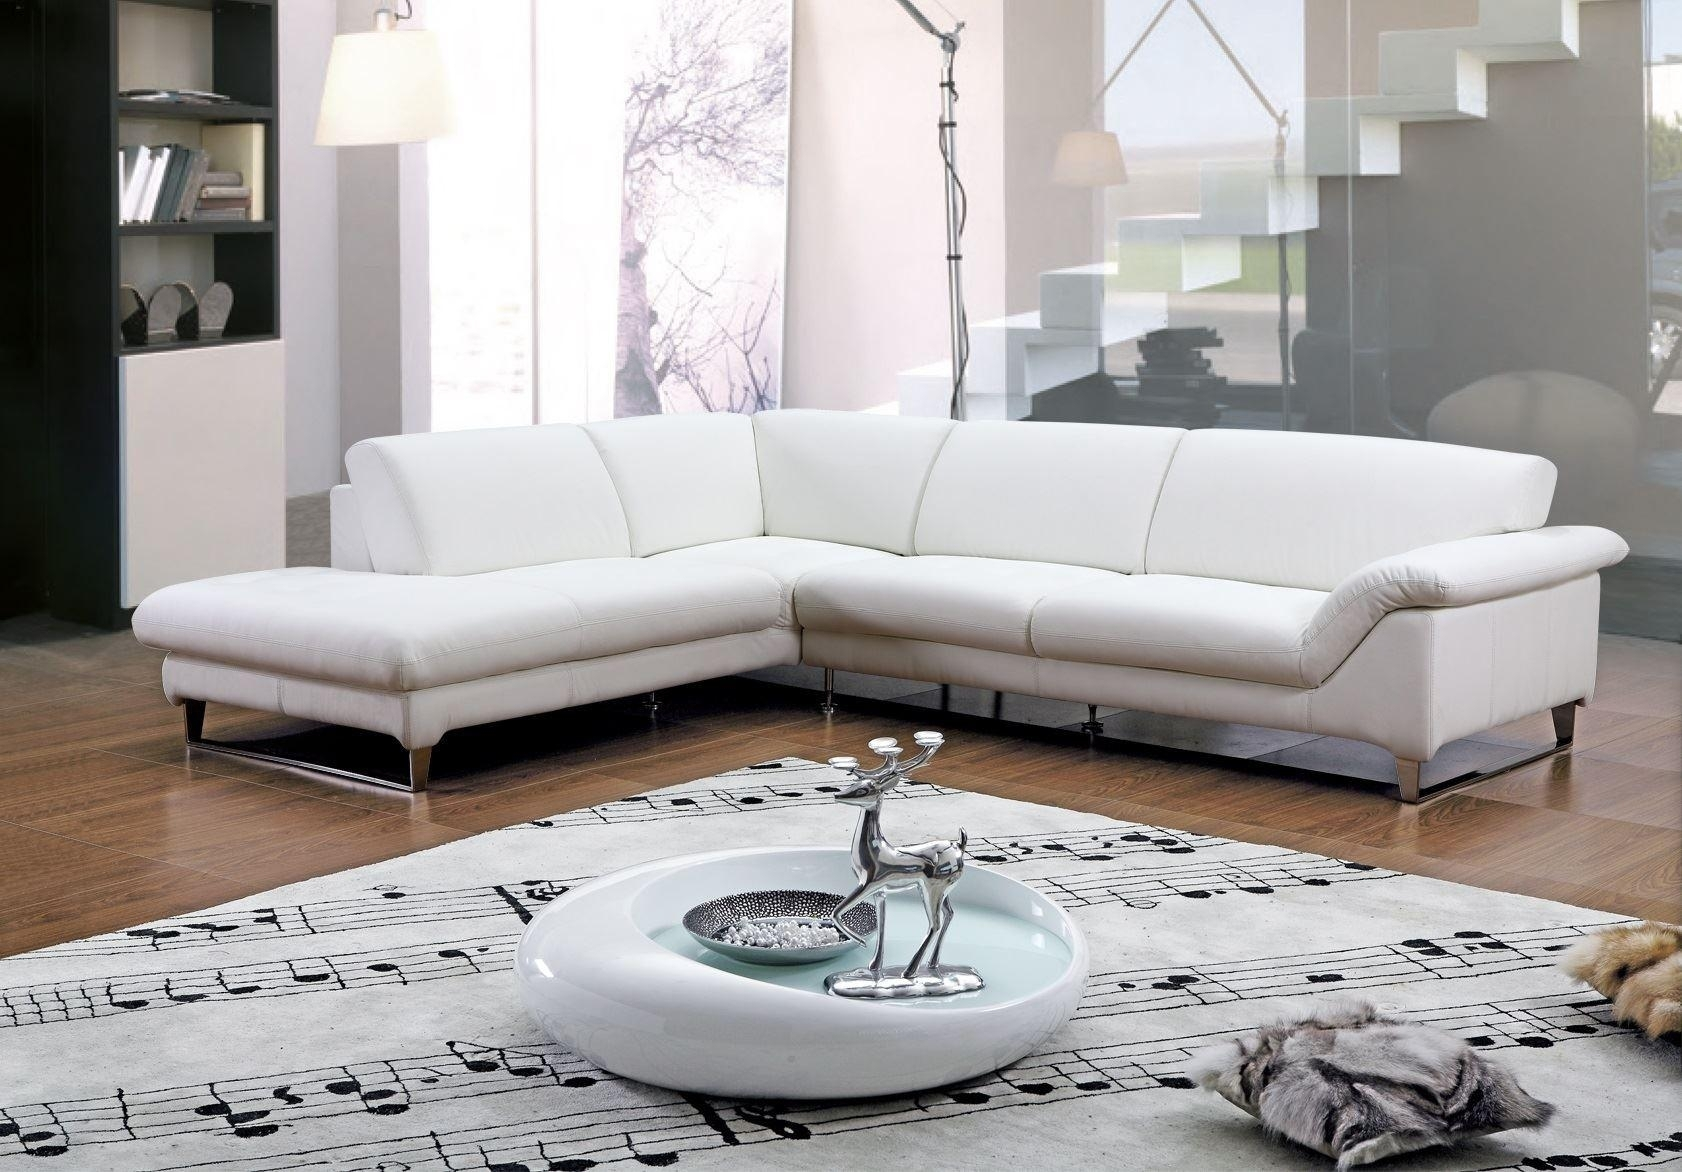 Furniture : White Leather Sectional Couch Fresh Emejing Wooden For White Leather Corner Sofas (Image 4 of 10)